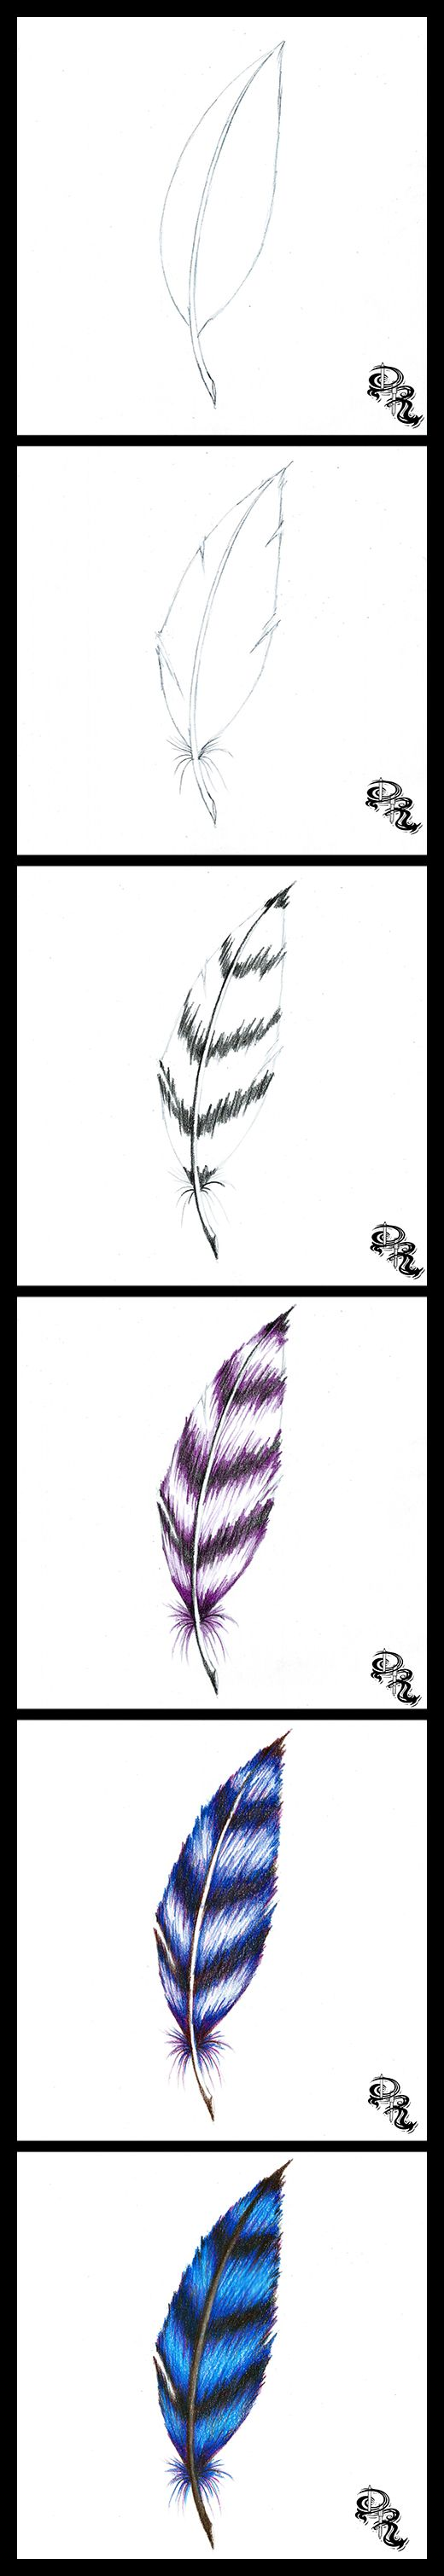 How to draw a feather with Colored Pencils. In this lesson I will teach you a fun way to create feathers with character and color. We will focus on our strokes, directional shading, and color blending in this lesson this time around.  Click the image for the full lesson.   #art #drawing #free #artlessons #lesson #feather #angel #bird #blue #diy #howto